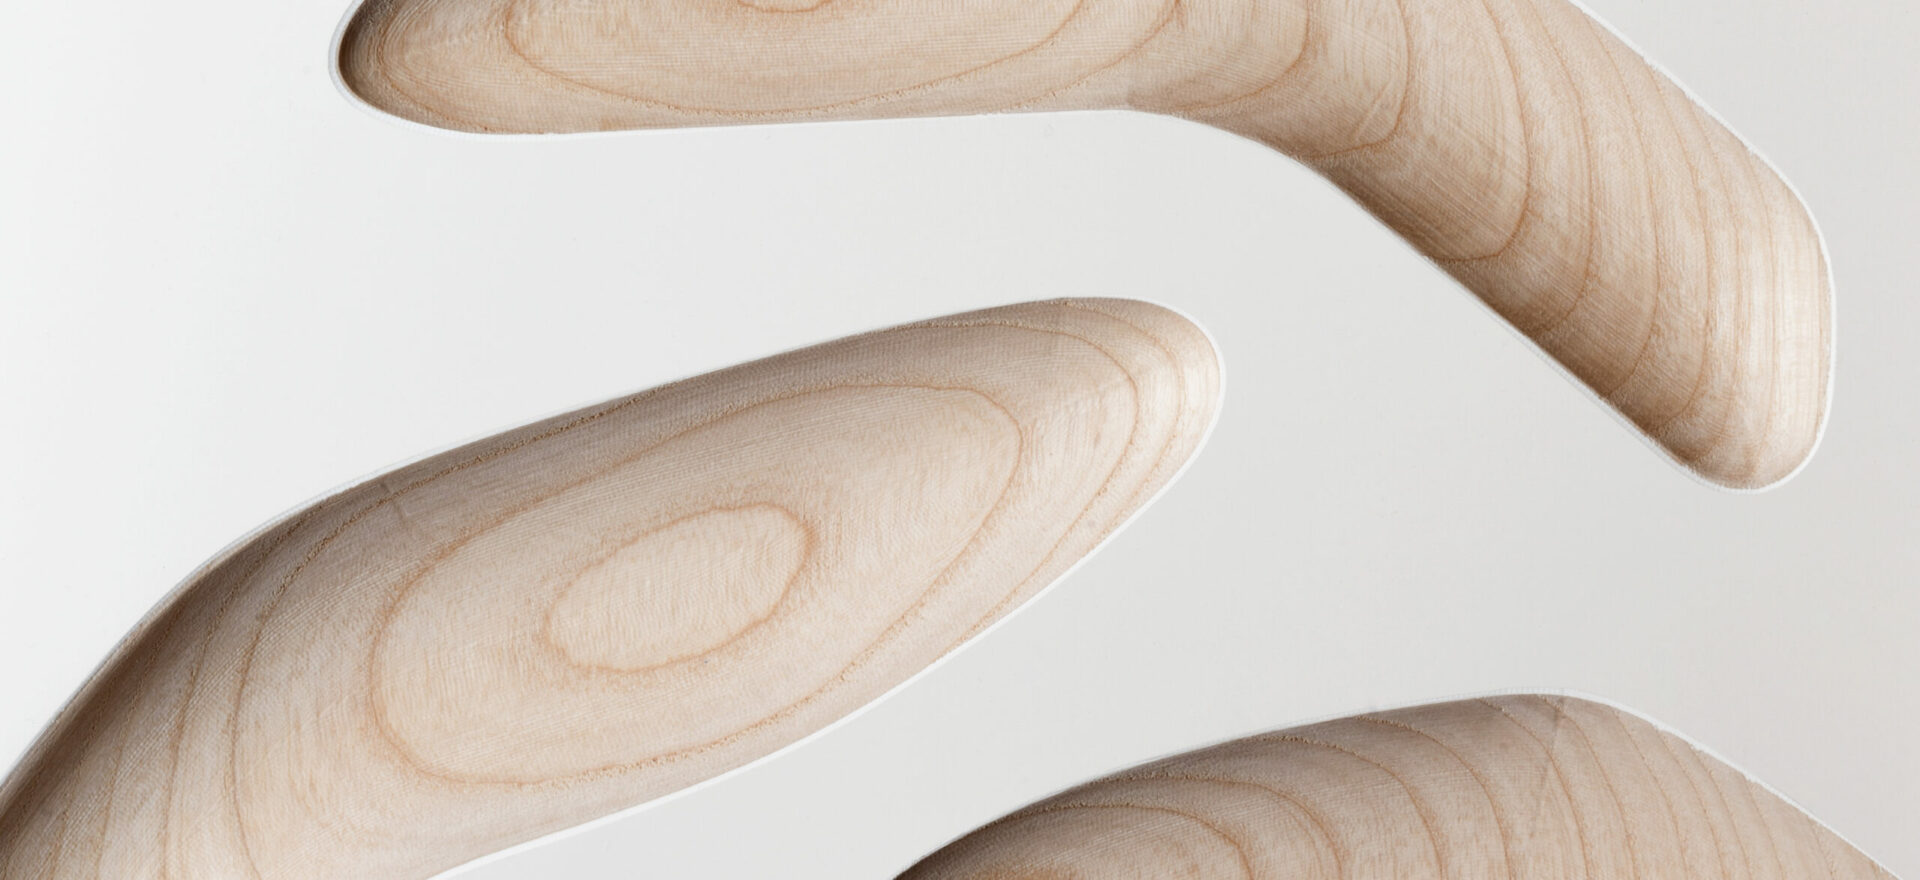 Oggetti Smarritti center piece by Mario Trimarchi with an architectural style showing details related the concave forms of wood to hold fruits.